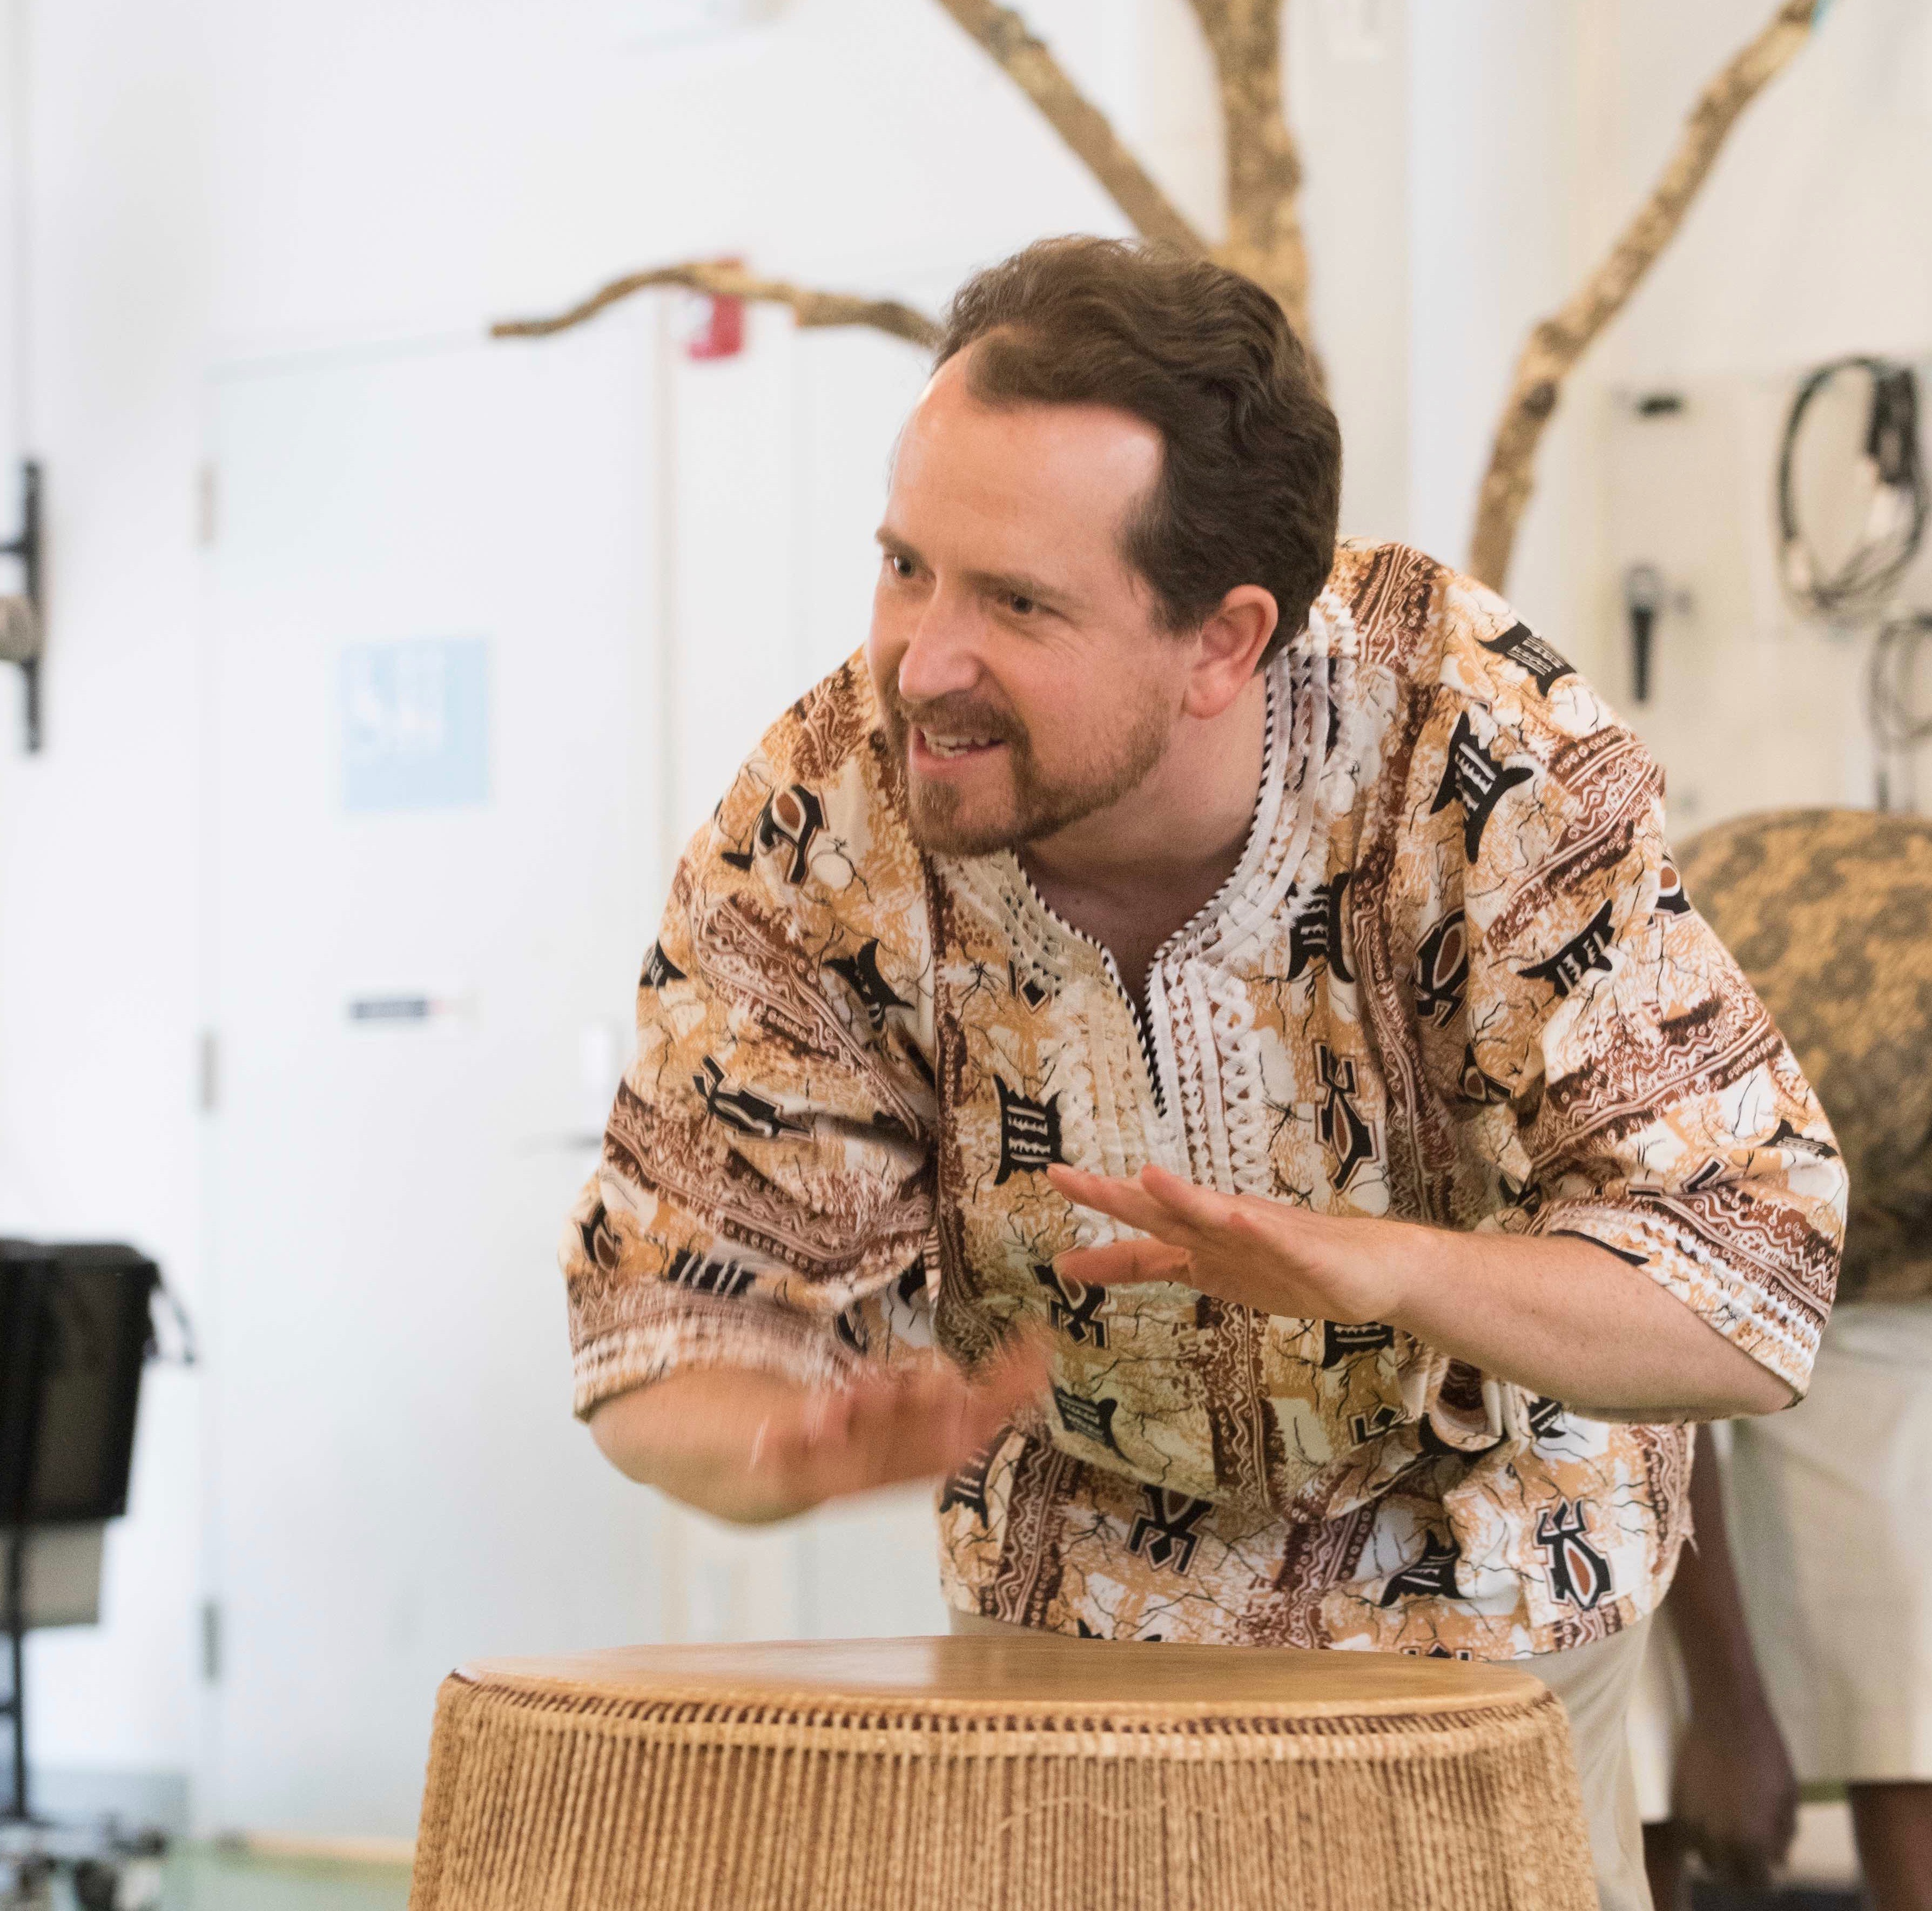 World Drumming Workshop with Mark Stone